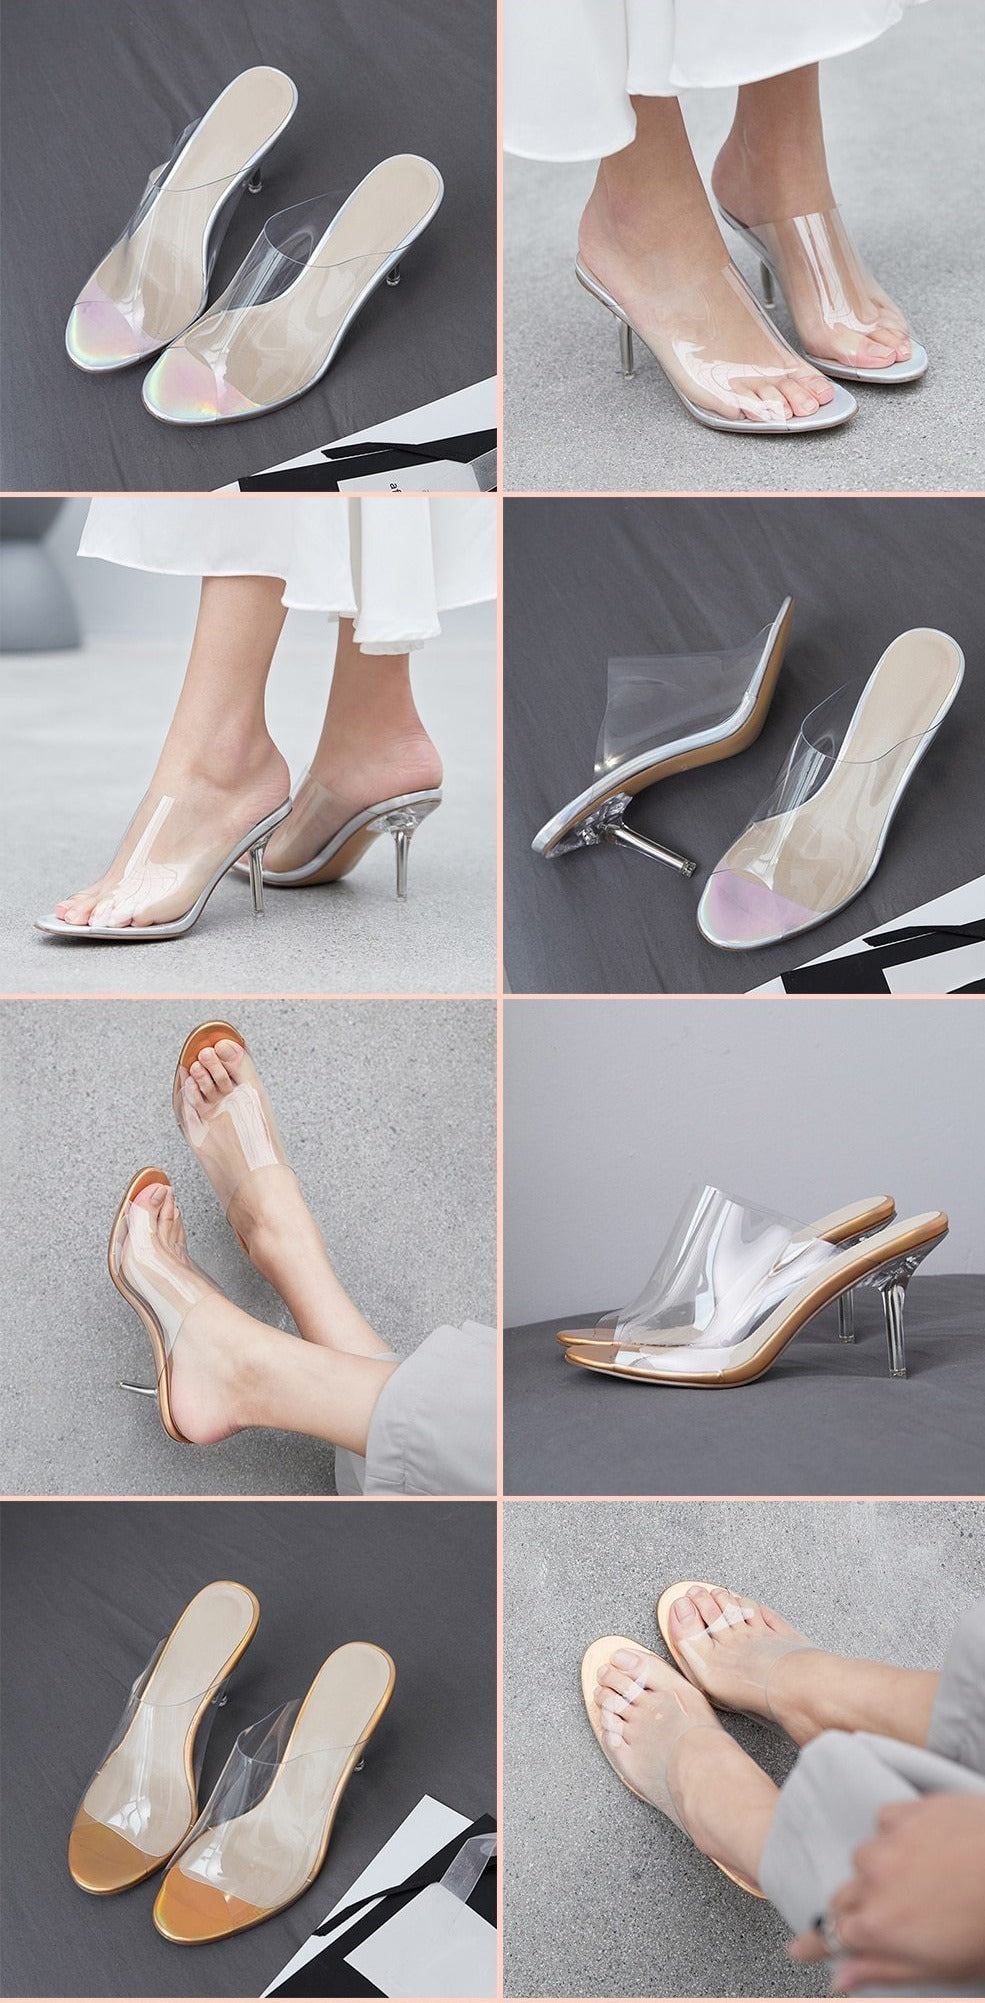 Transparent Jelly sandals